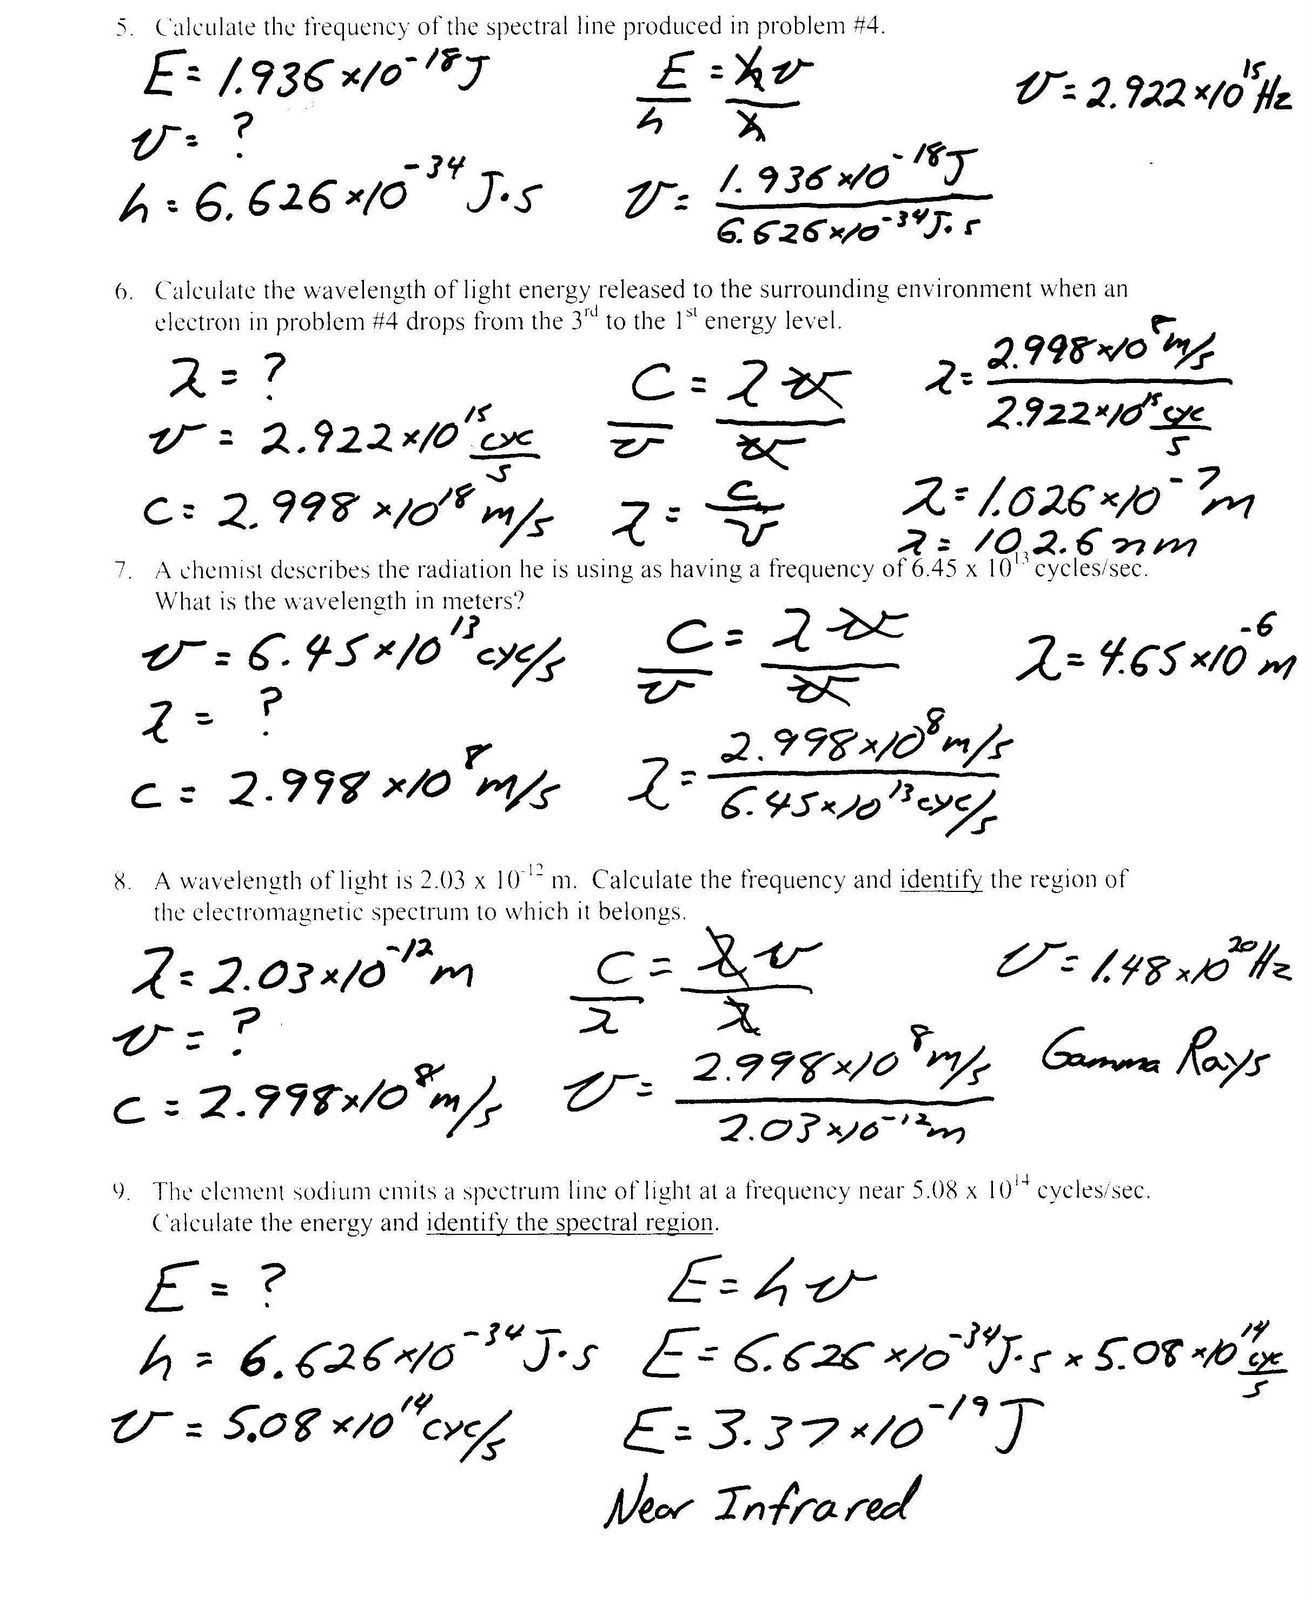 Conduction Convection Radiation Worksheet Radiation Conduction Convection Worksheet Nidecmege